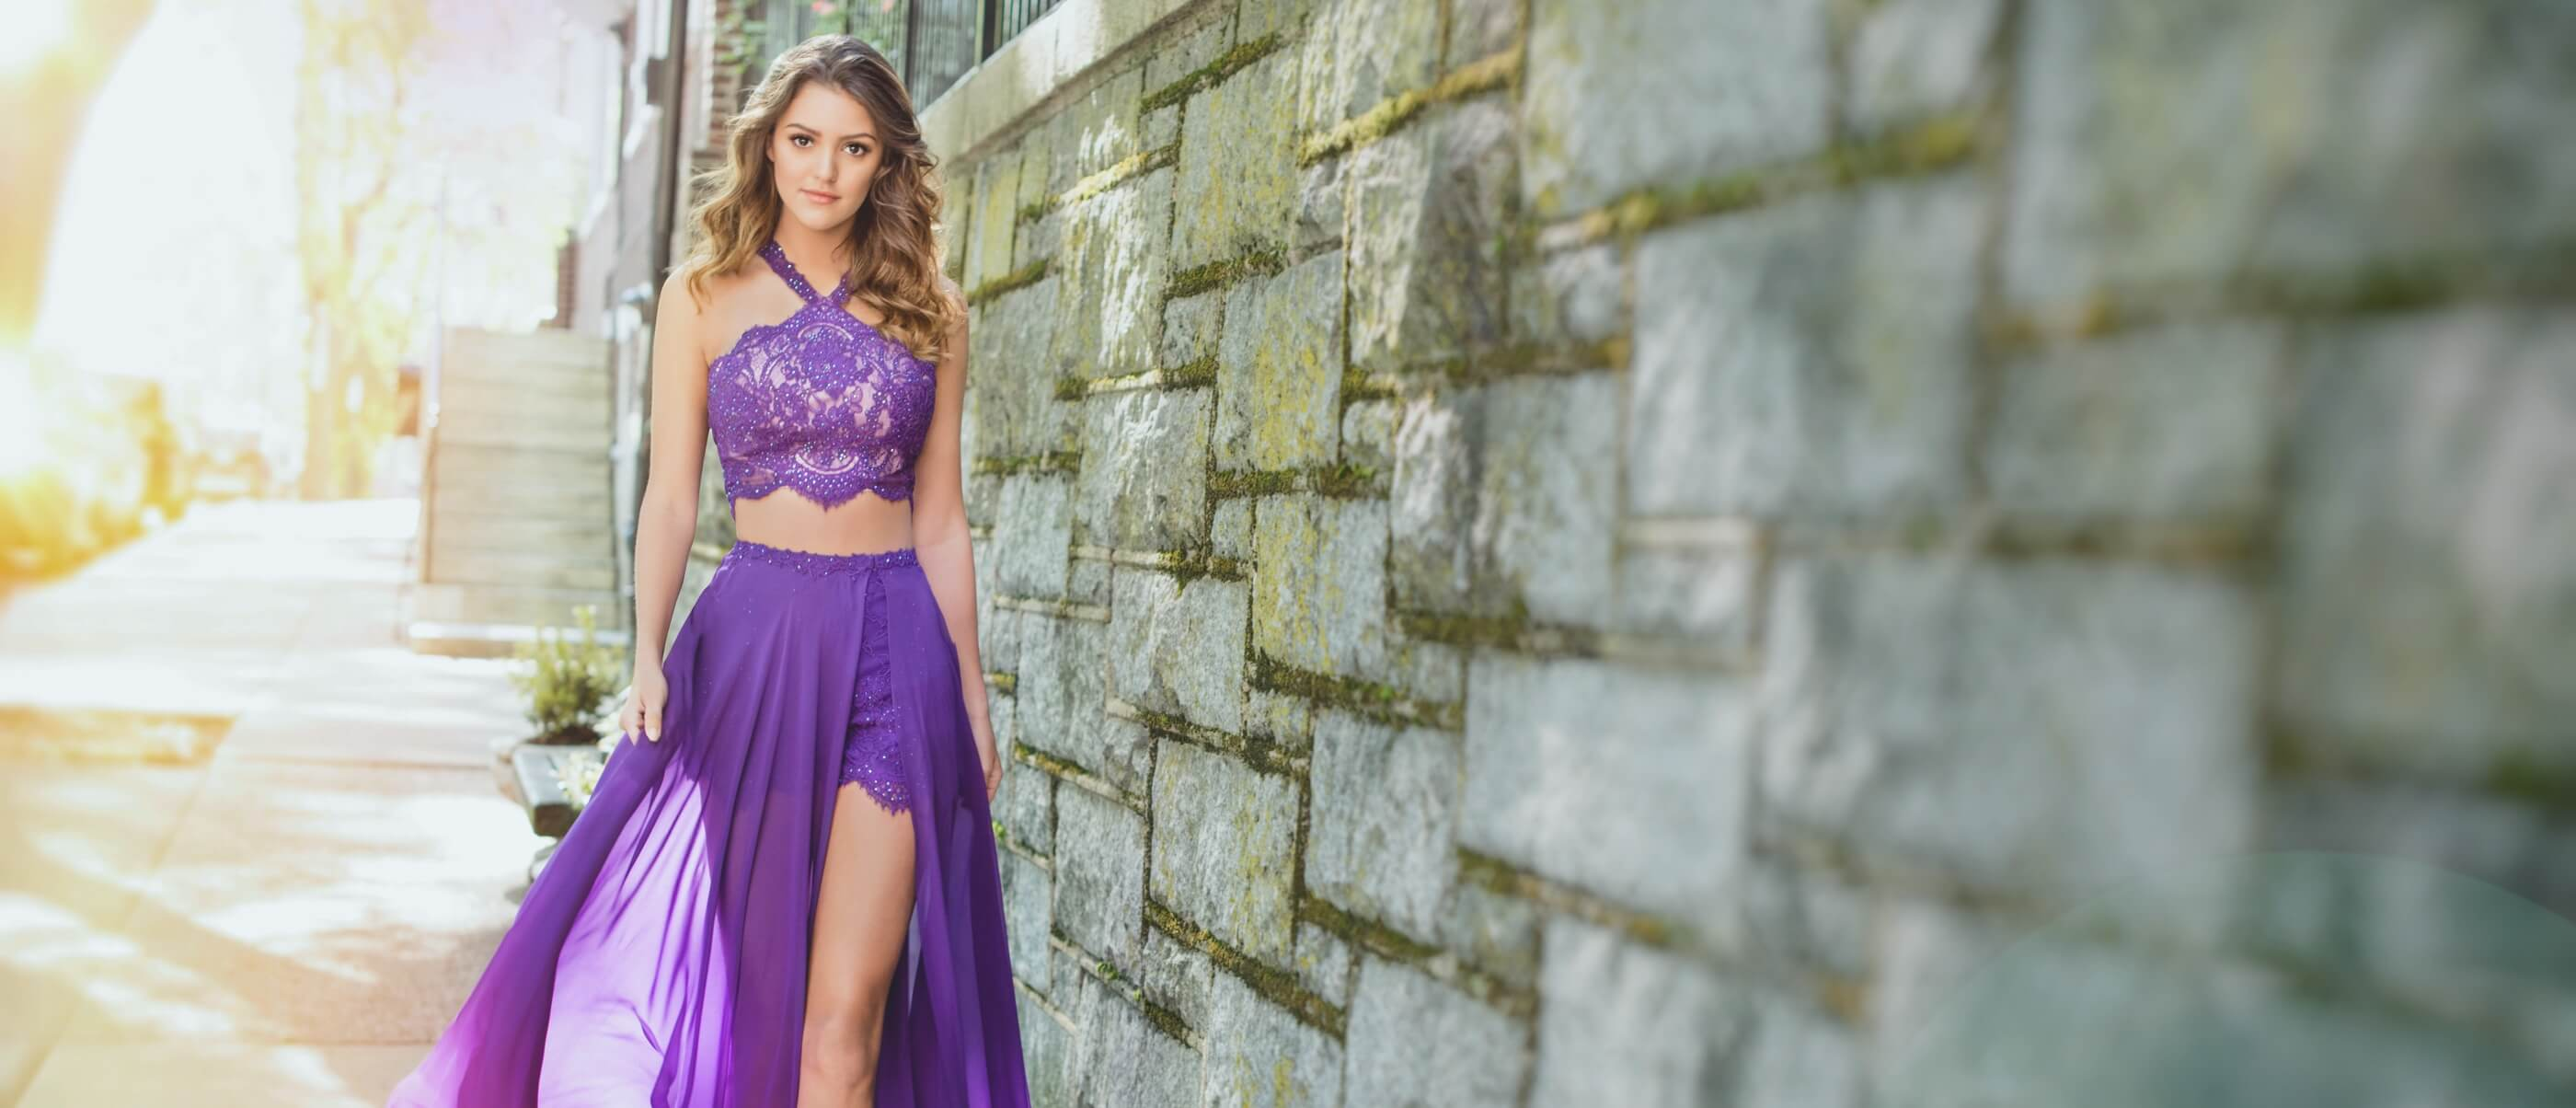 Brunette in purple two piece dress